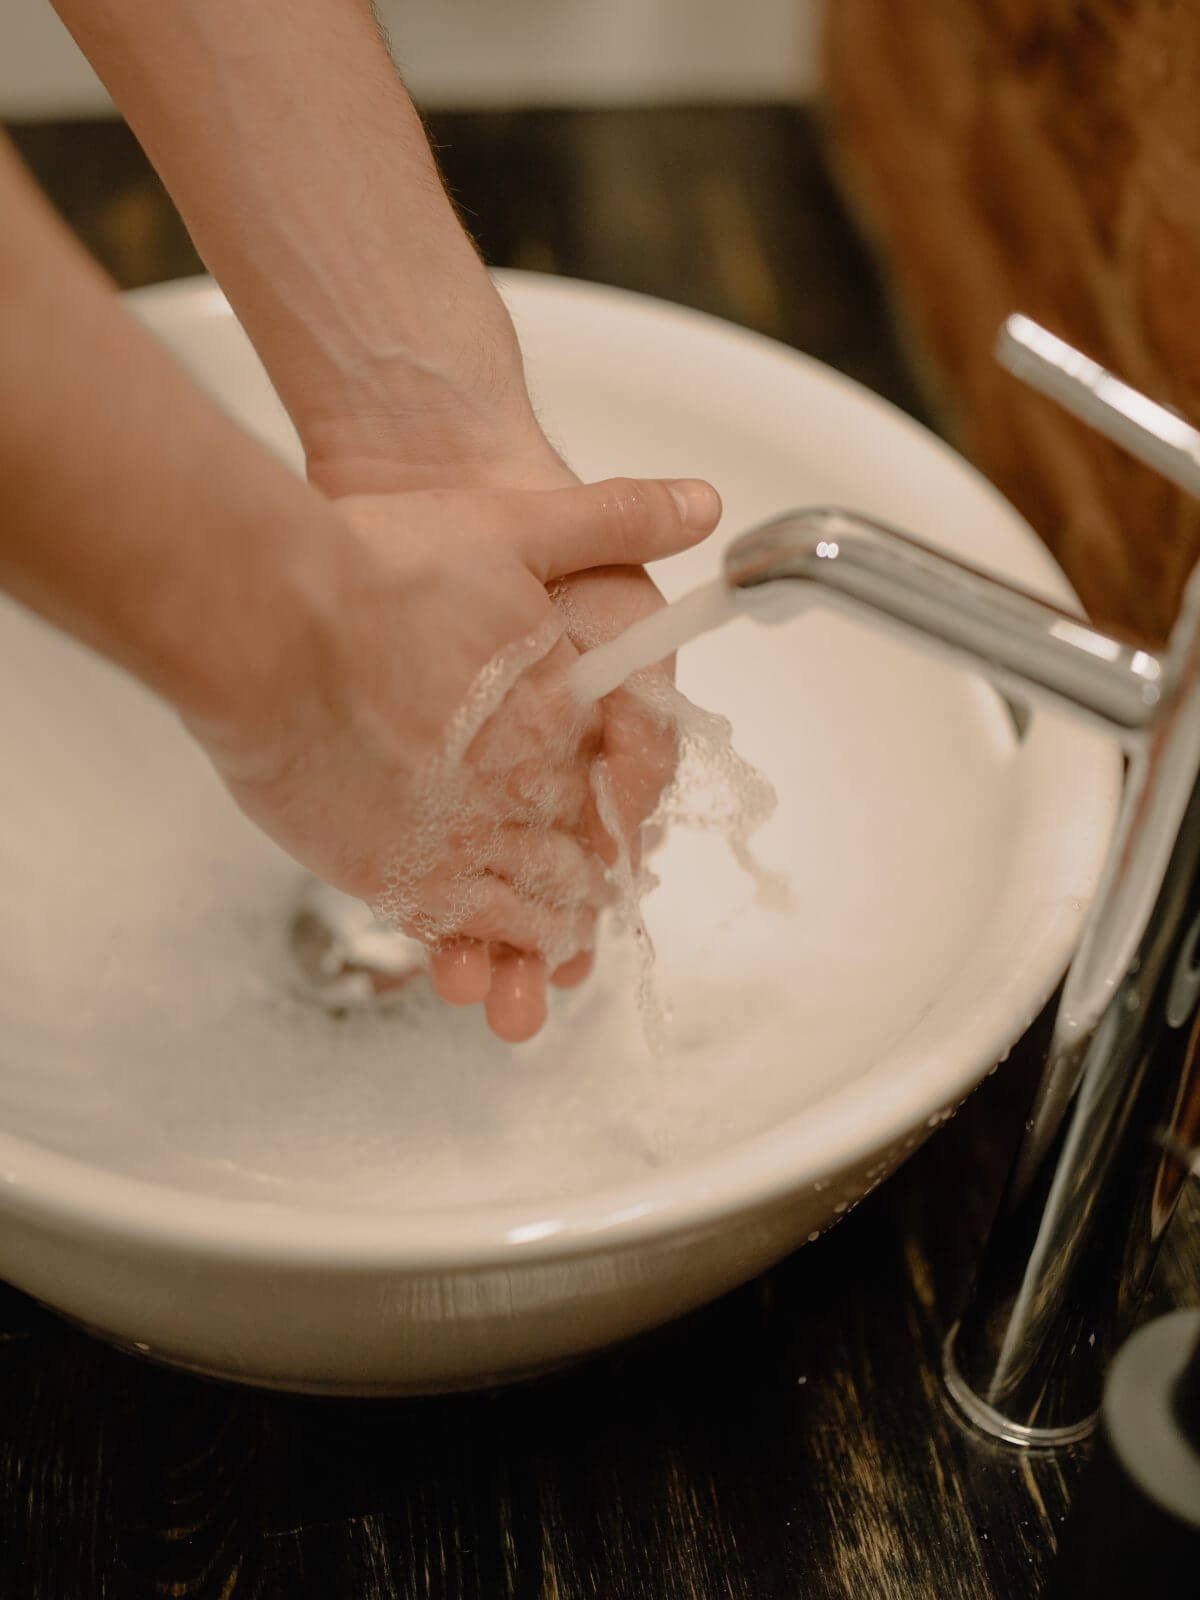 Canva-Person-Washing-Hands-1200x1600.jpg